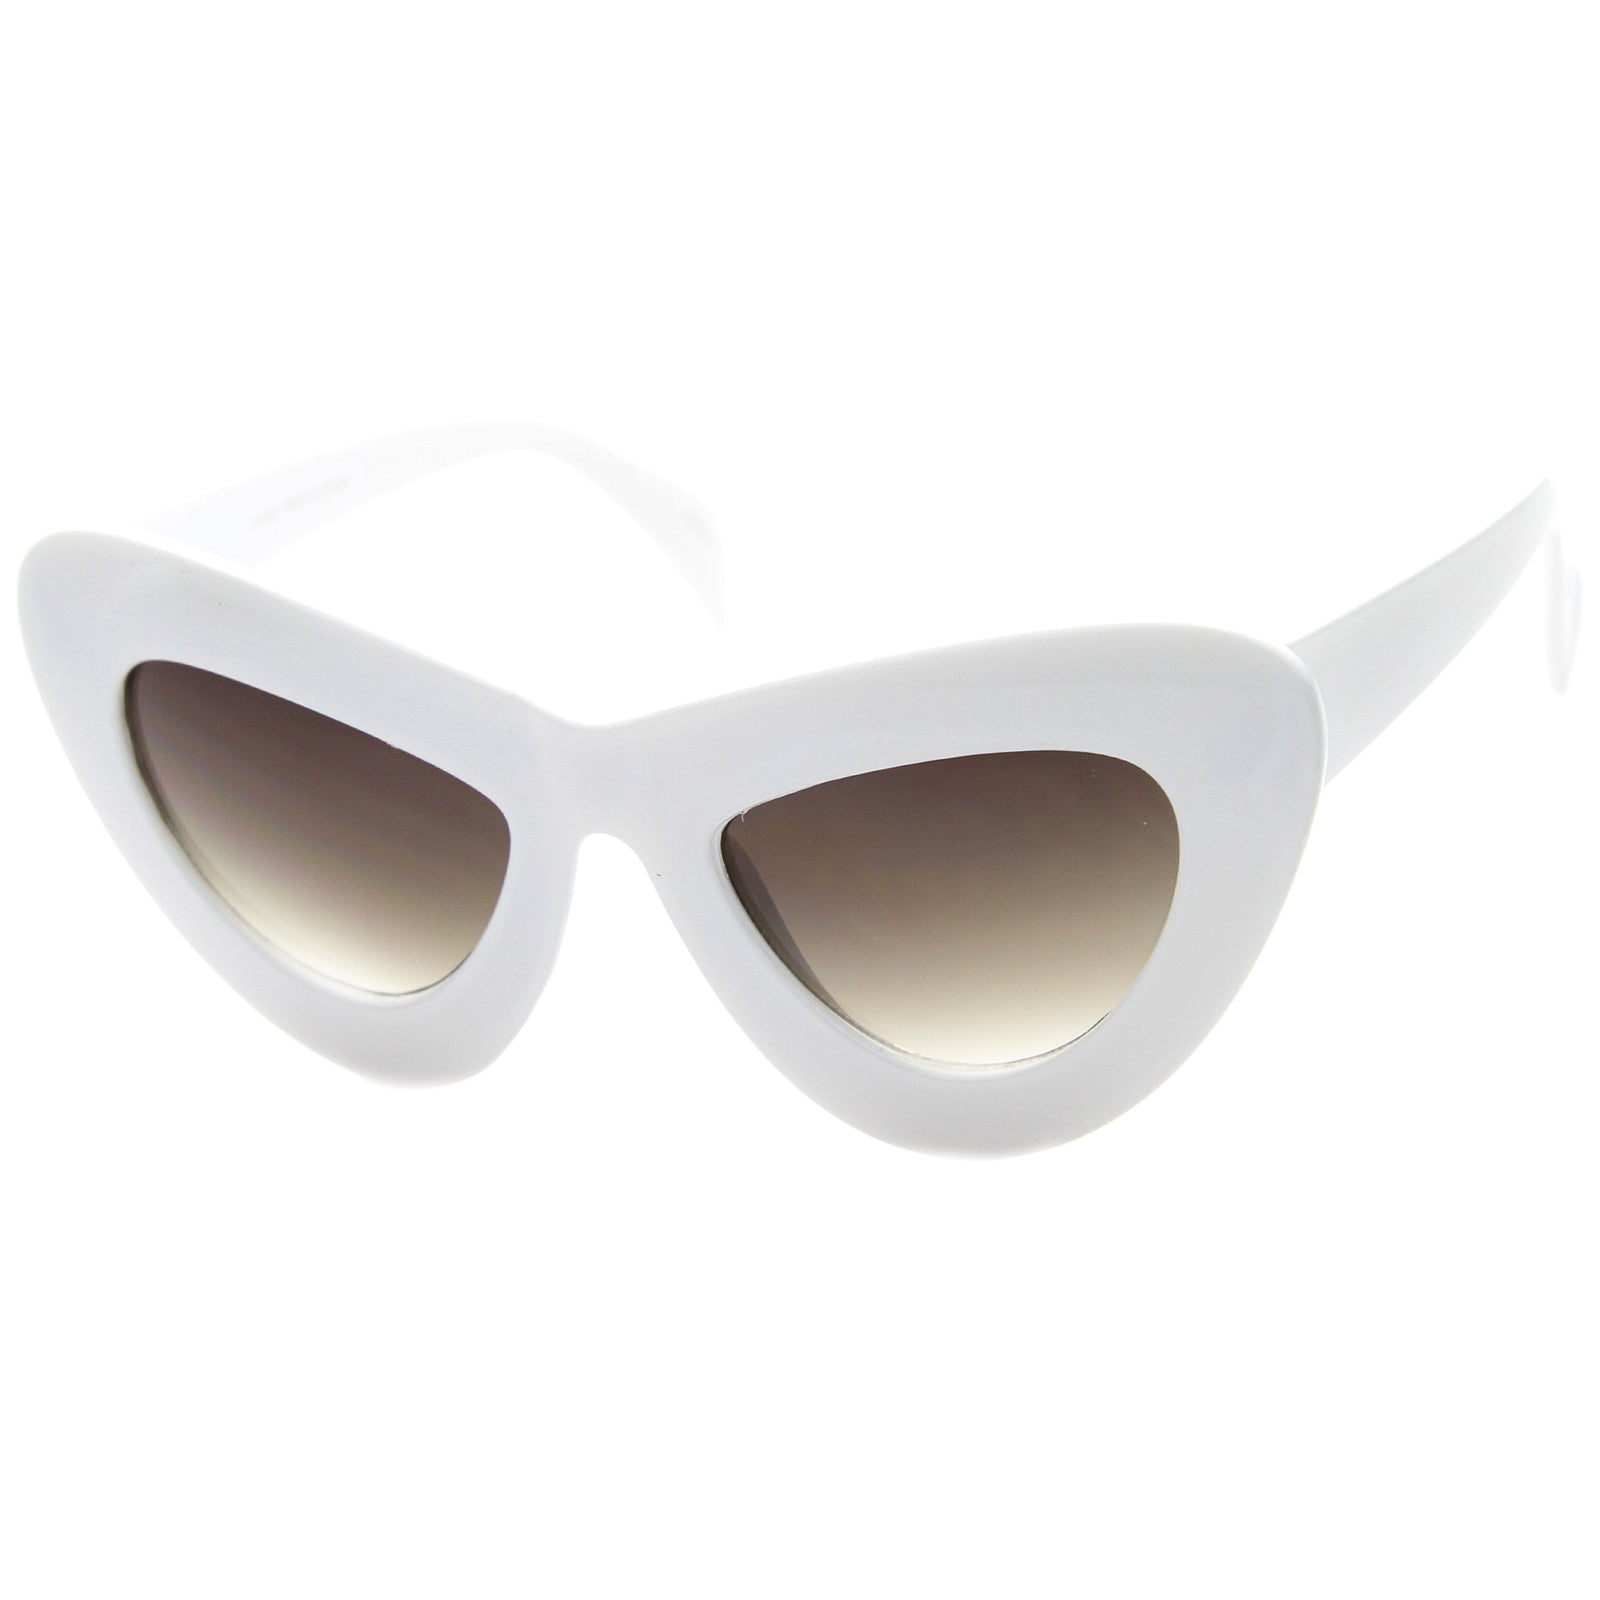 Womens Cat Eye Sunglasses With UV400 Protected Composite Lens - sunglass.la - 6